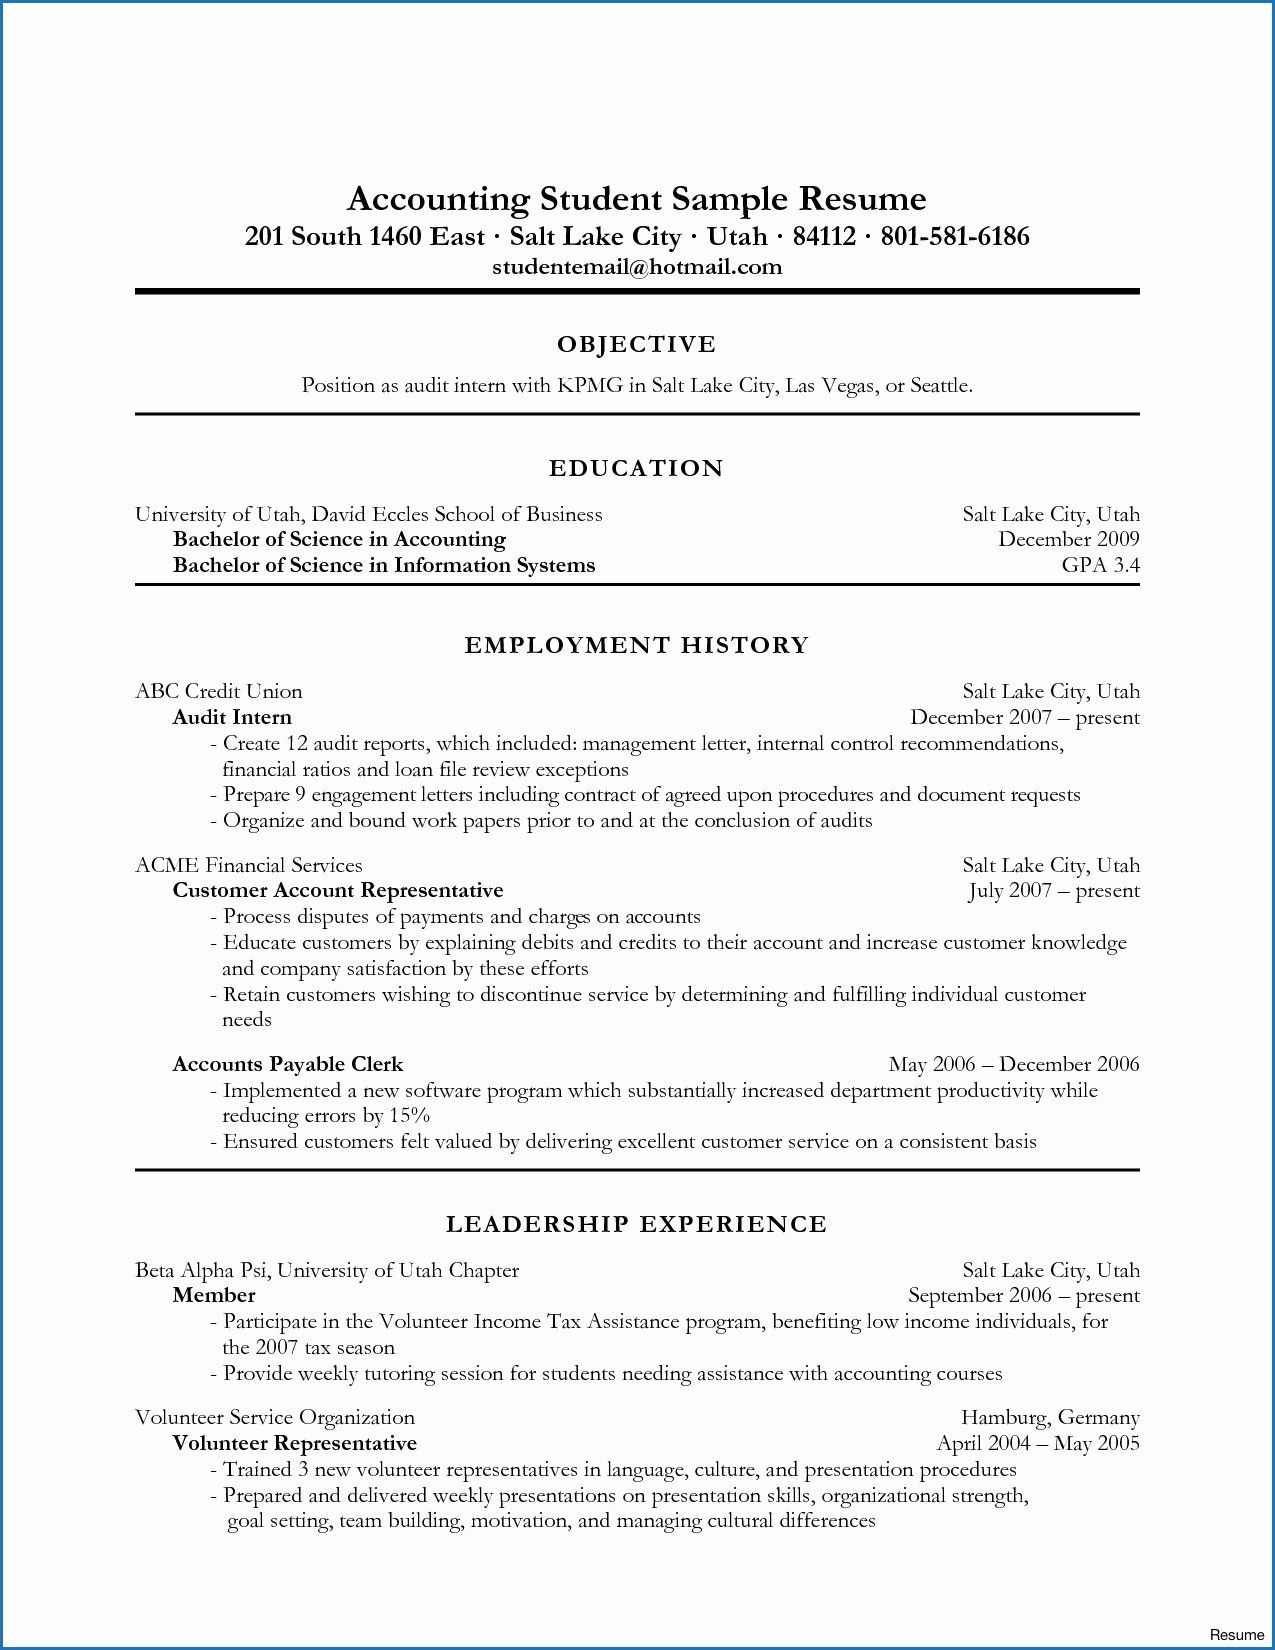 10 Example Resume Accounting Student Accounting student